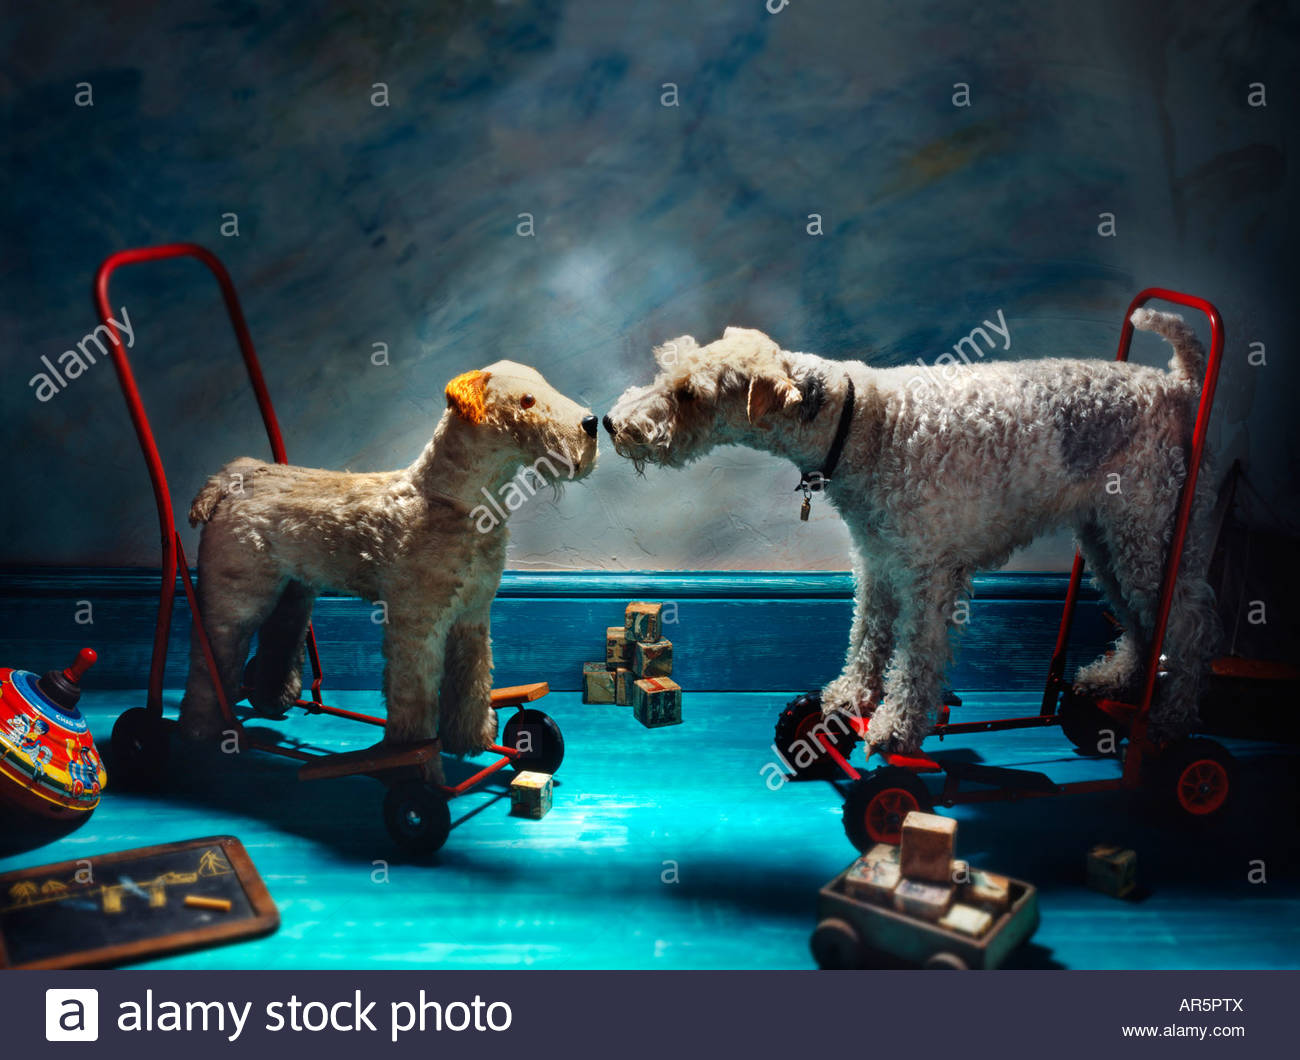 Toy Fox Terrier Stock Photos & Toy Fox Terrier Stock Images - Alamy